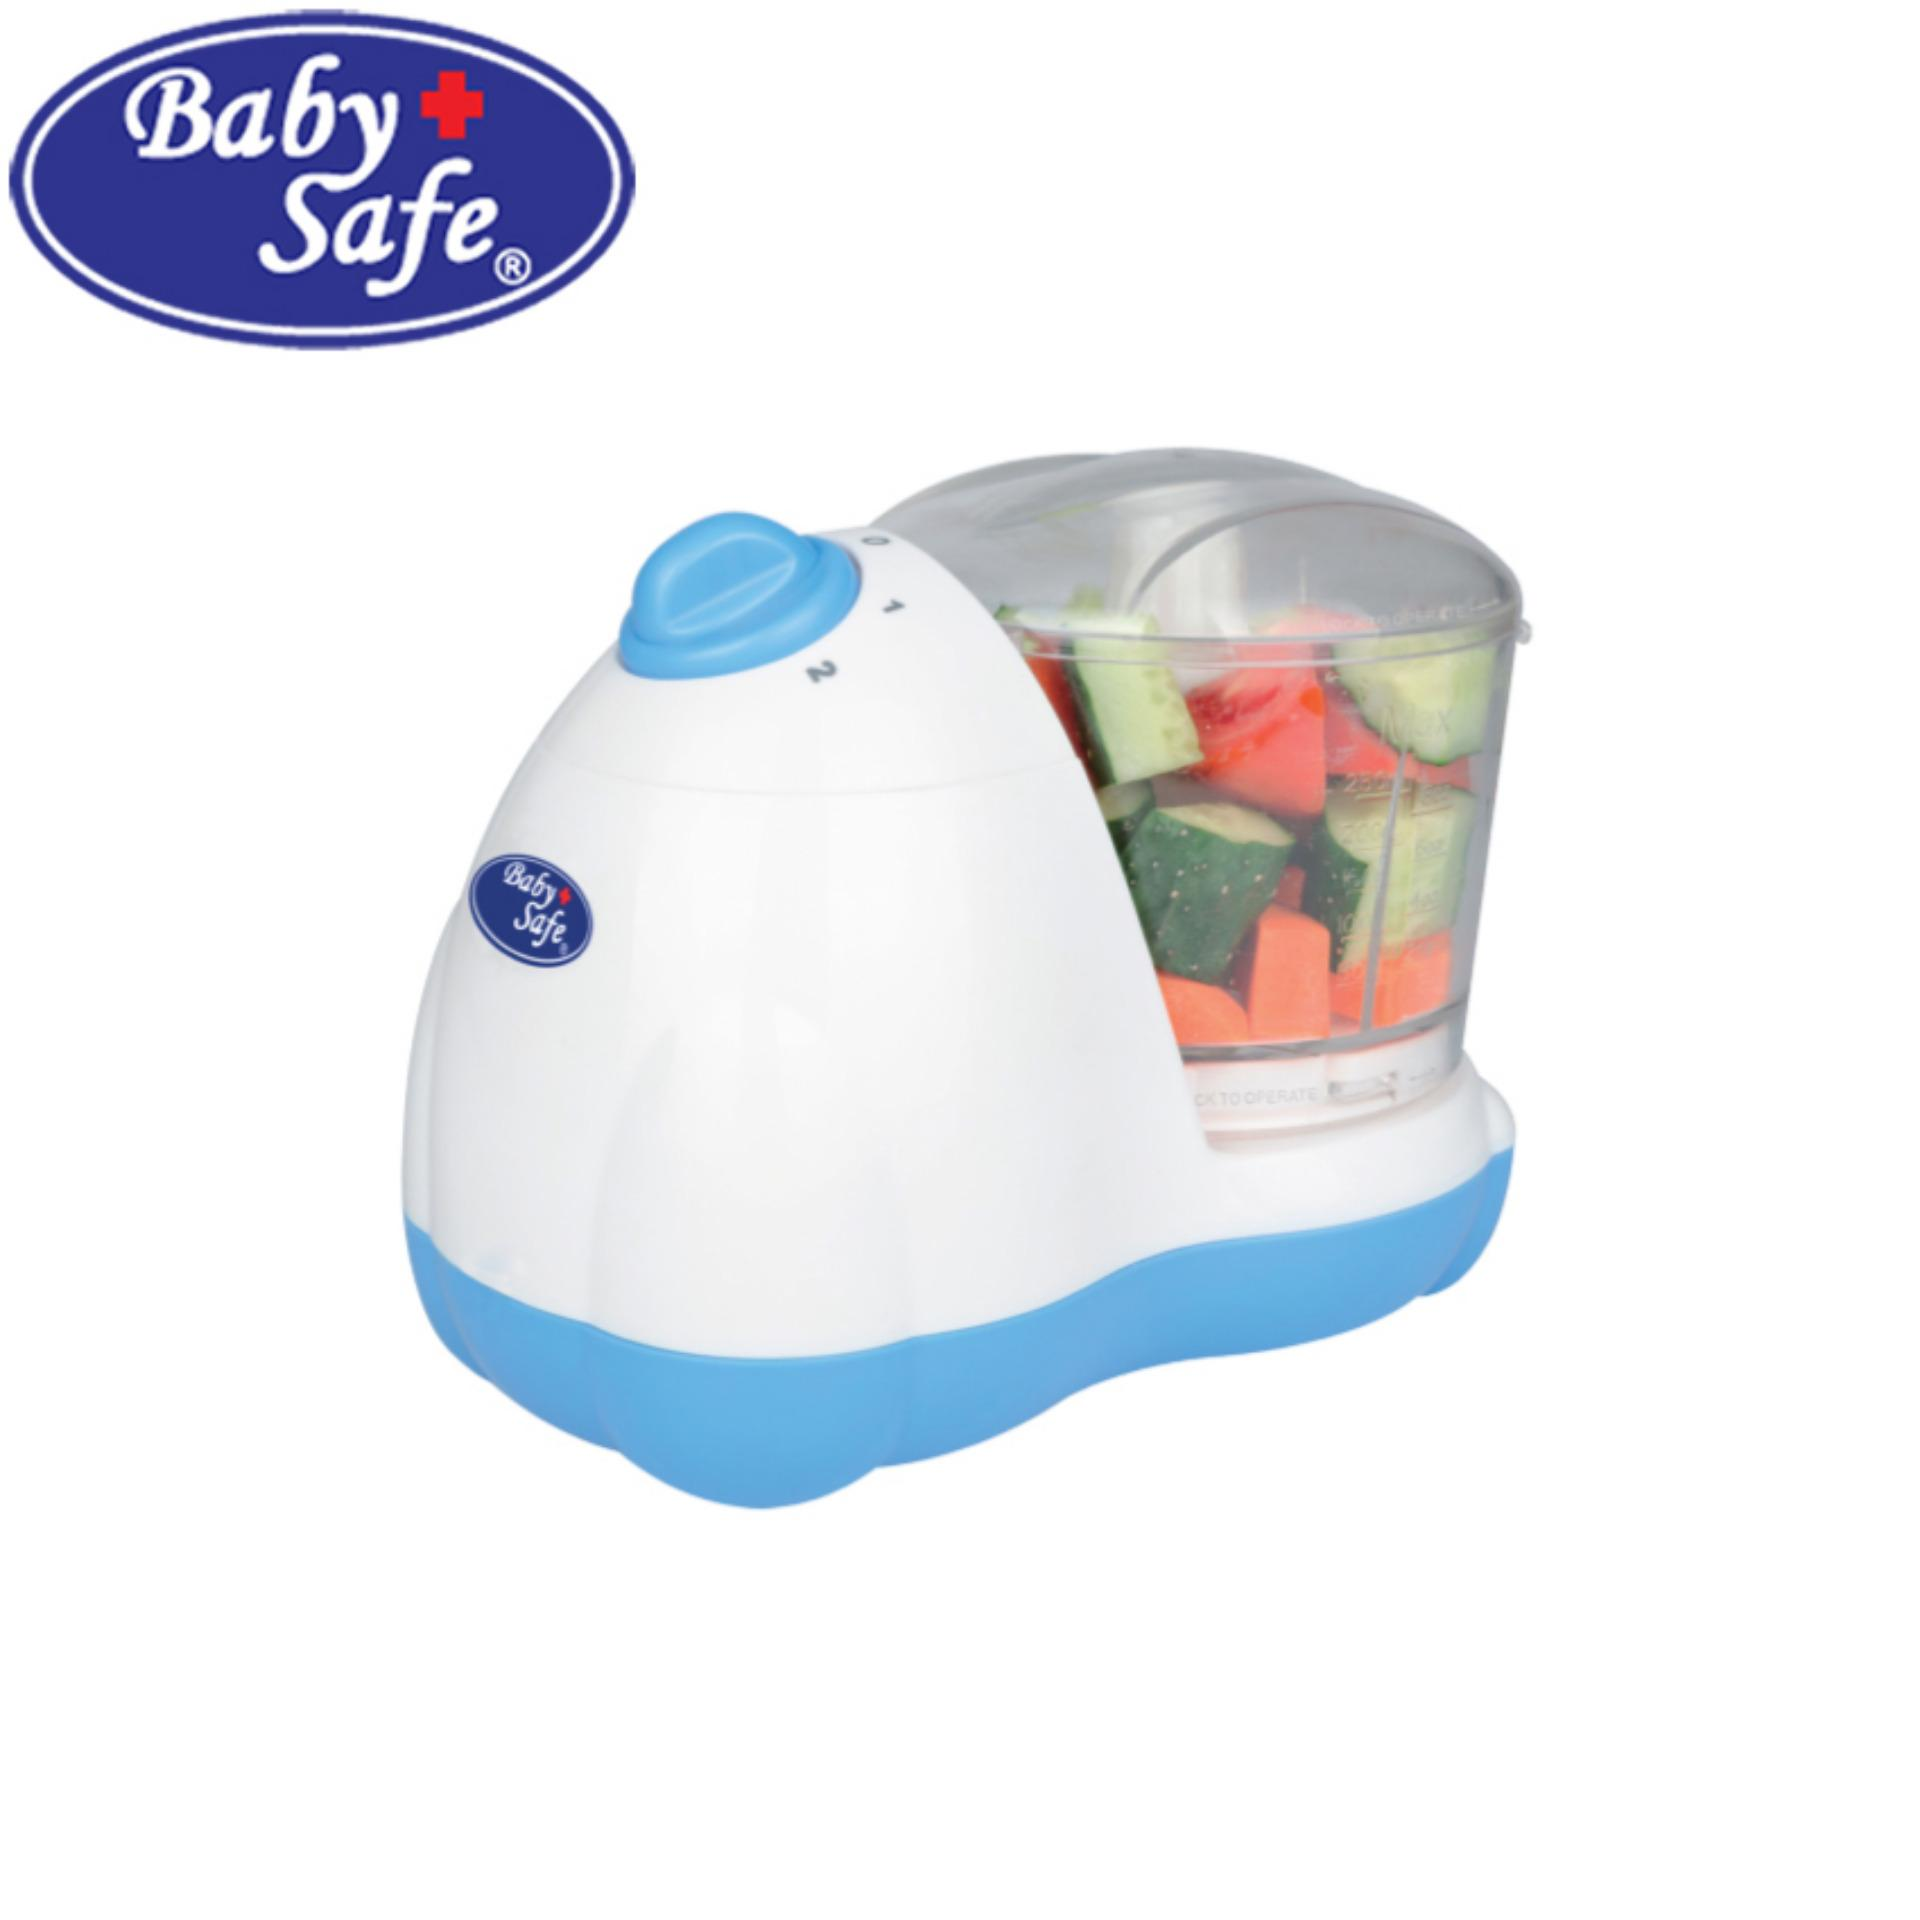 Jual Baby Safe Lb 609 Smart Baby Food Processor Original